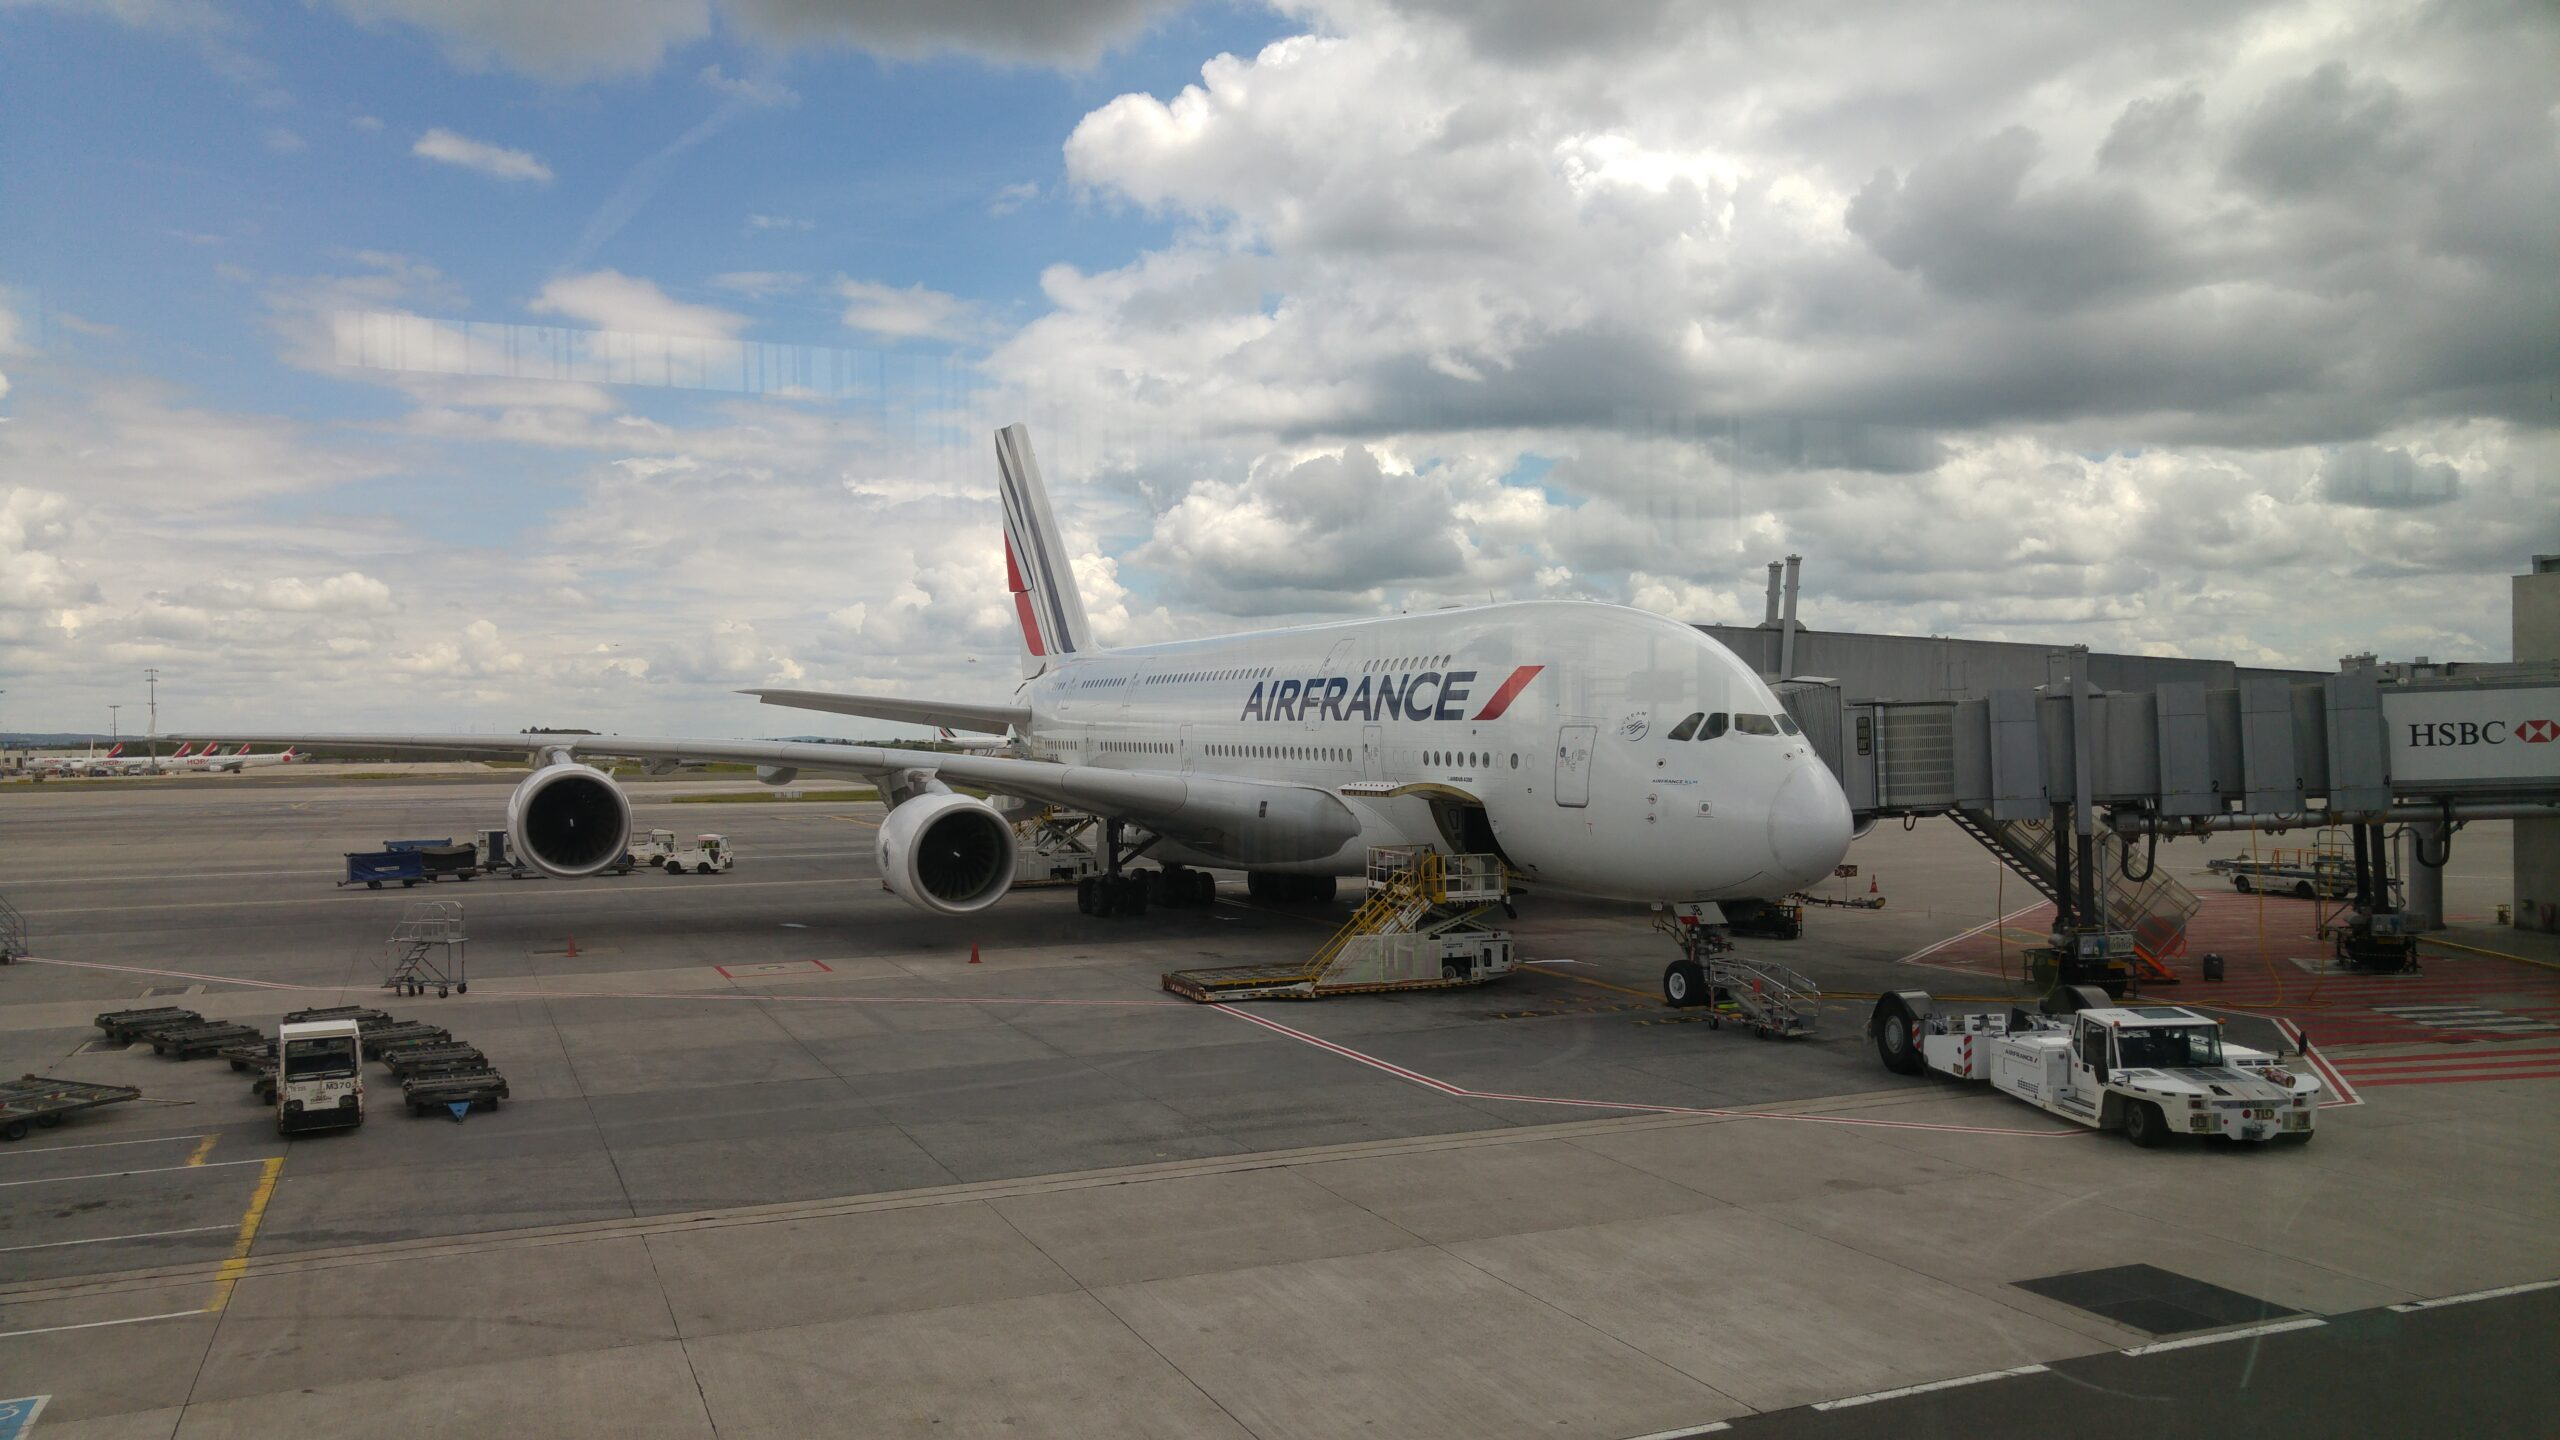 Flying with Air France